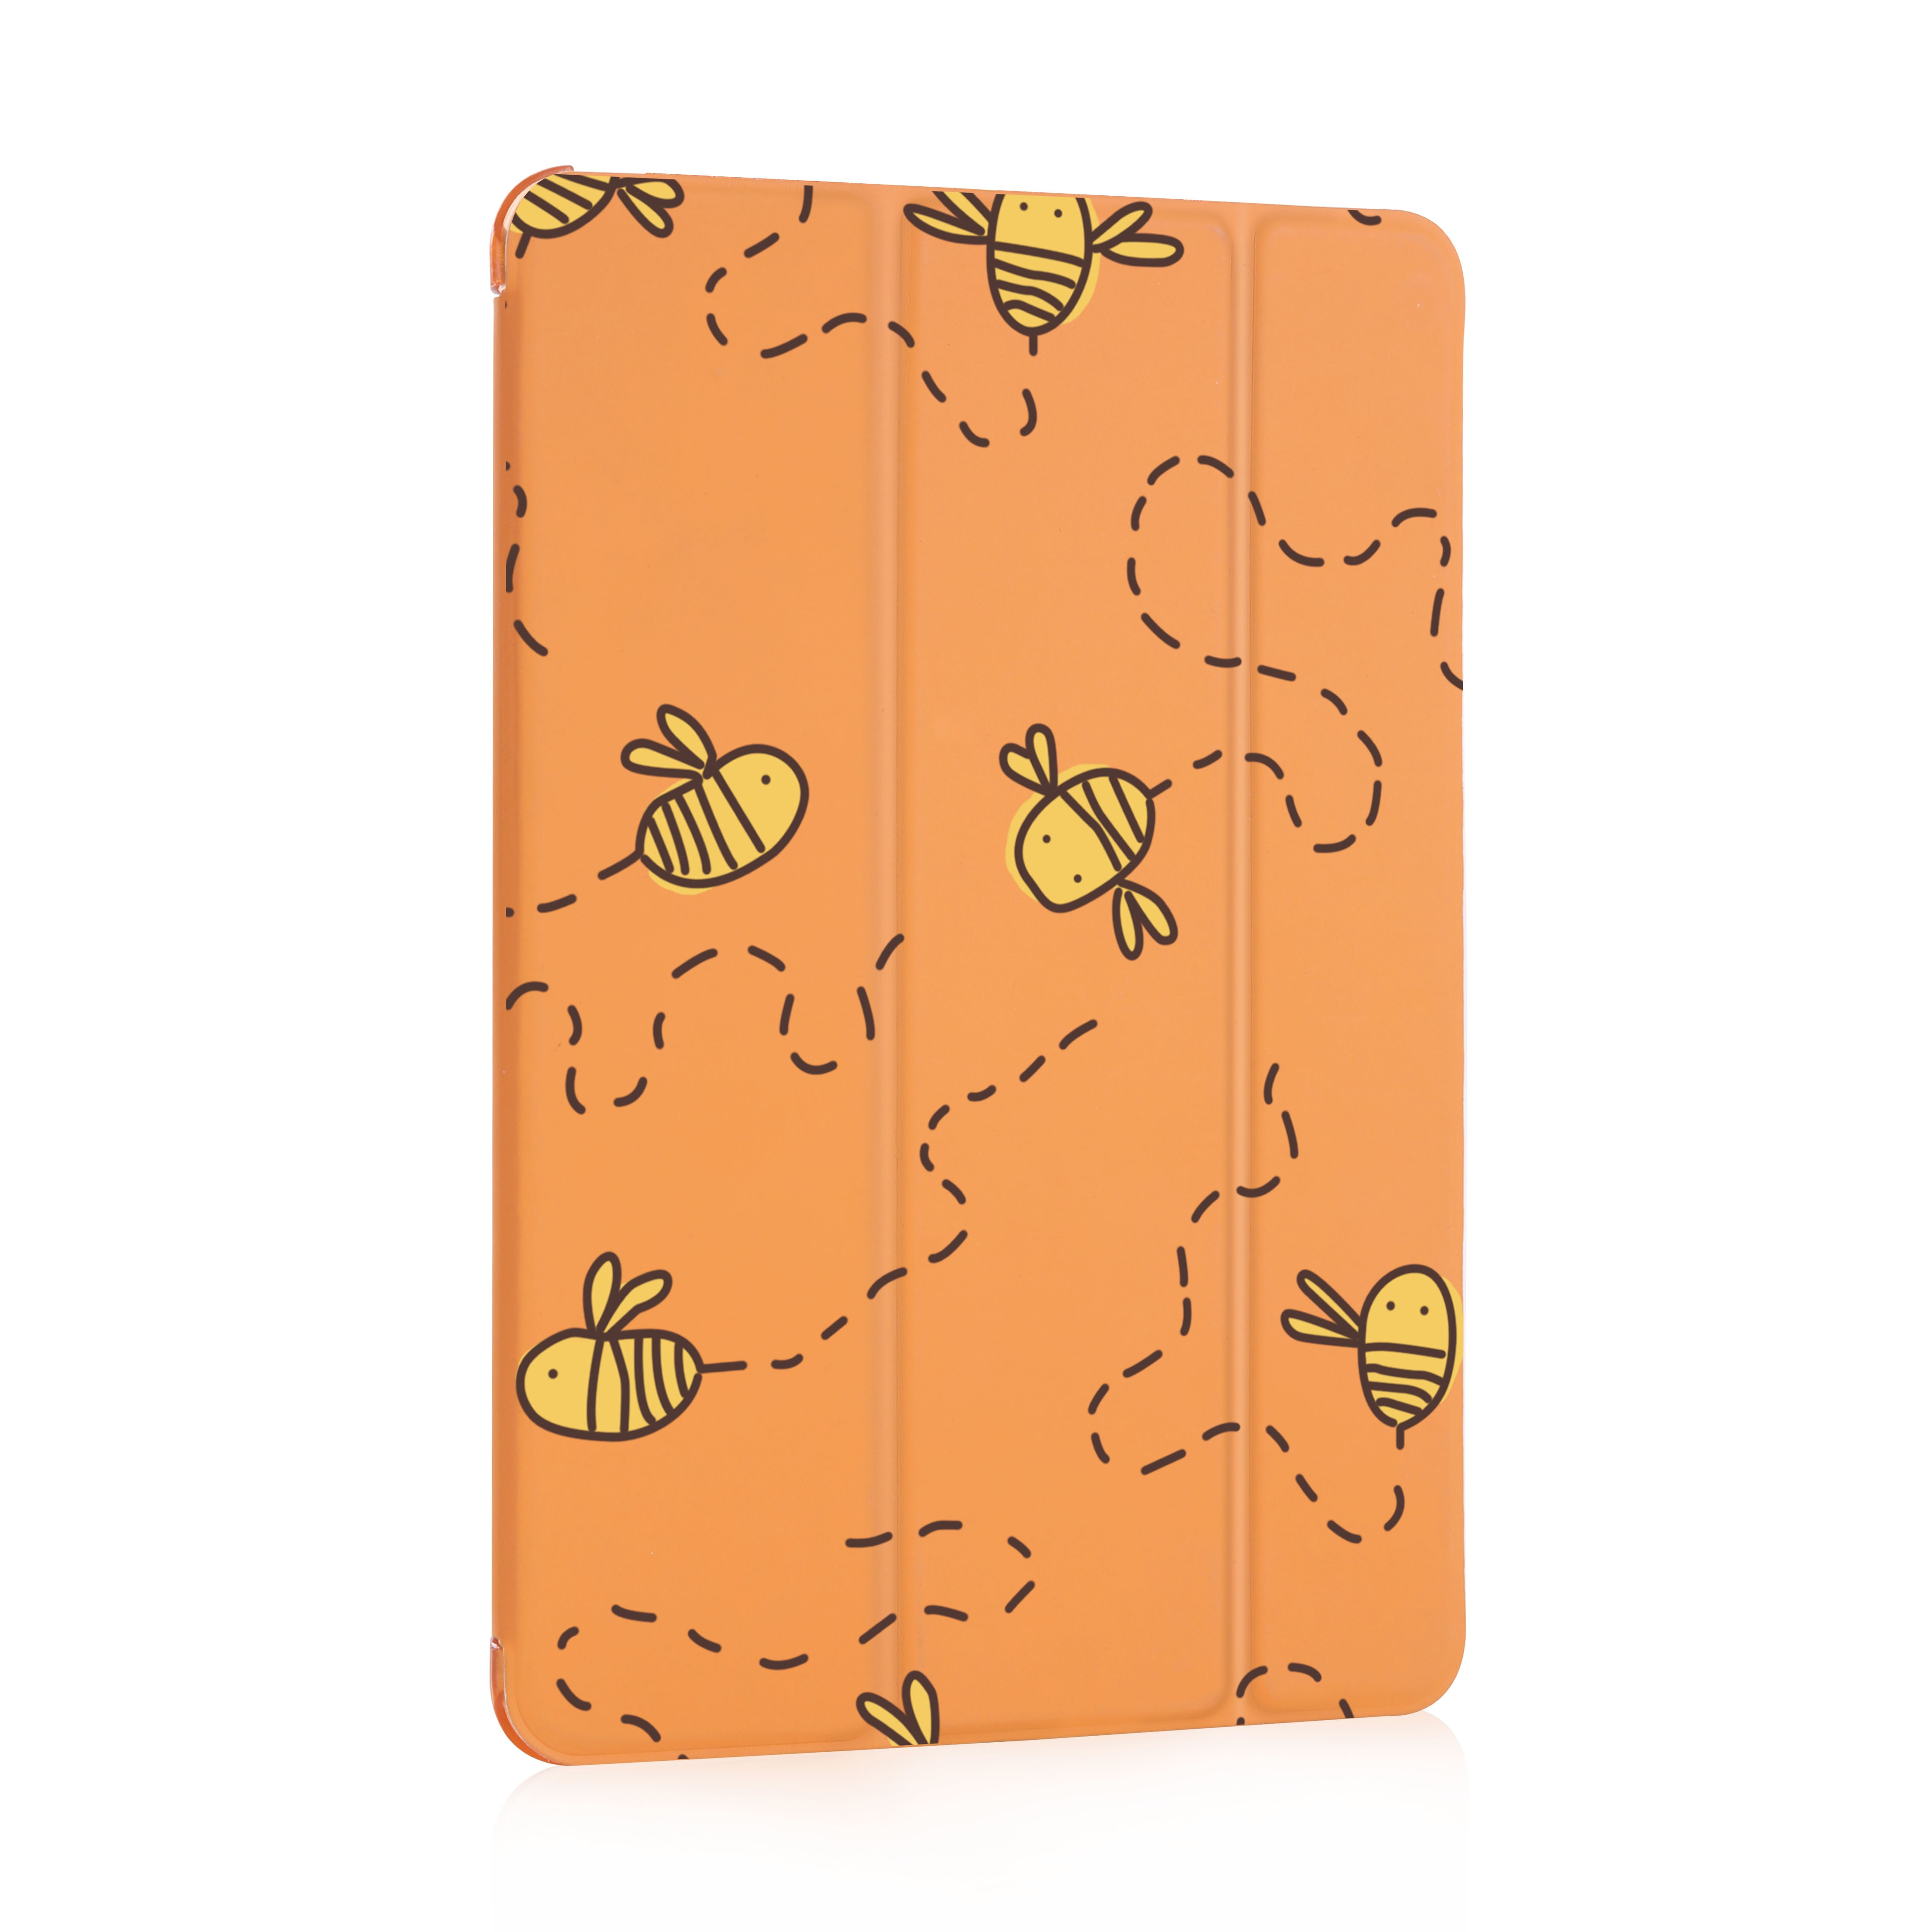 Cute Moon Cactus Magnet For iPad Mini 5 4 3 2 1 Tablet Cover For iPad Air 2 Air 3 ipad 7th Generation Case Ipad pro 11 Case 2020 enlarge